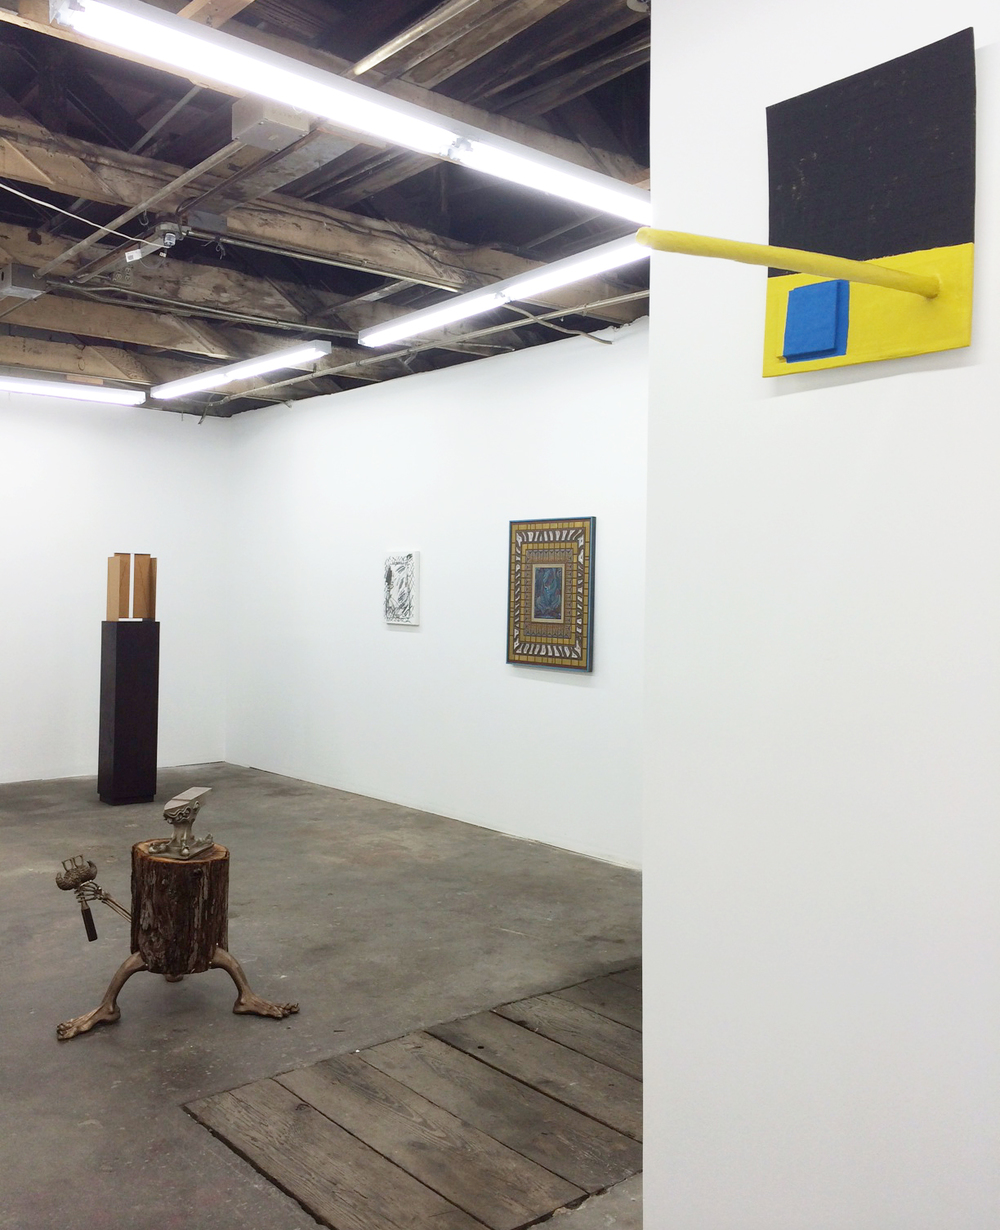 Installation shot Andrew Sexton, Matt Paweski, Laura Owens, Zach Harris and Roy Dowell